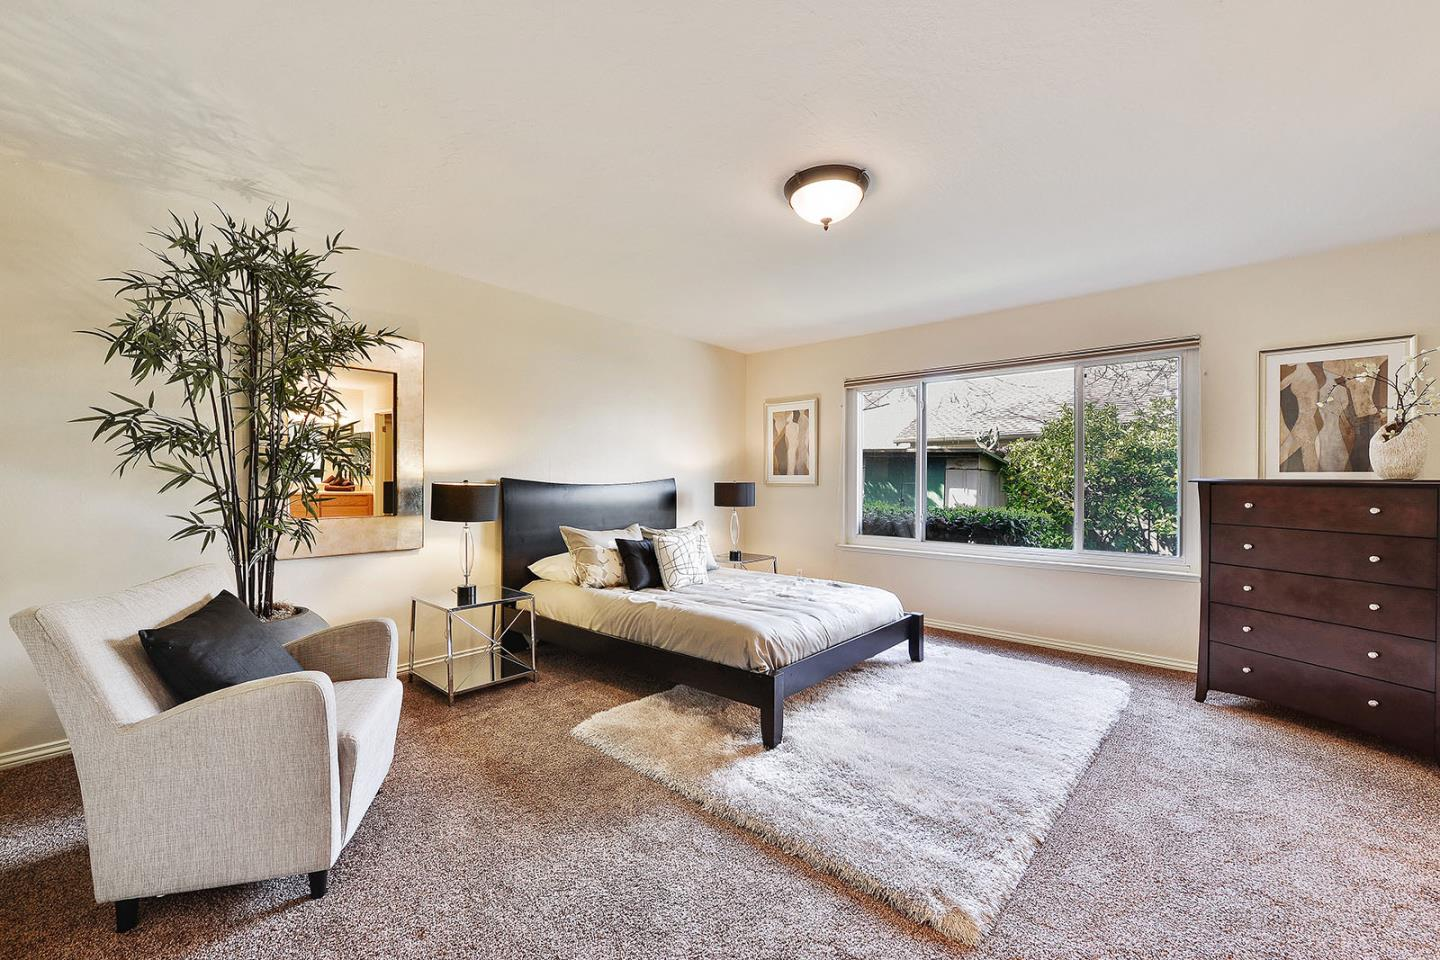 Additional photo for property listing at 917 Laguna Cir  FOSTER CITY, CALIFORNIA 94404